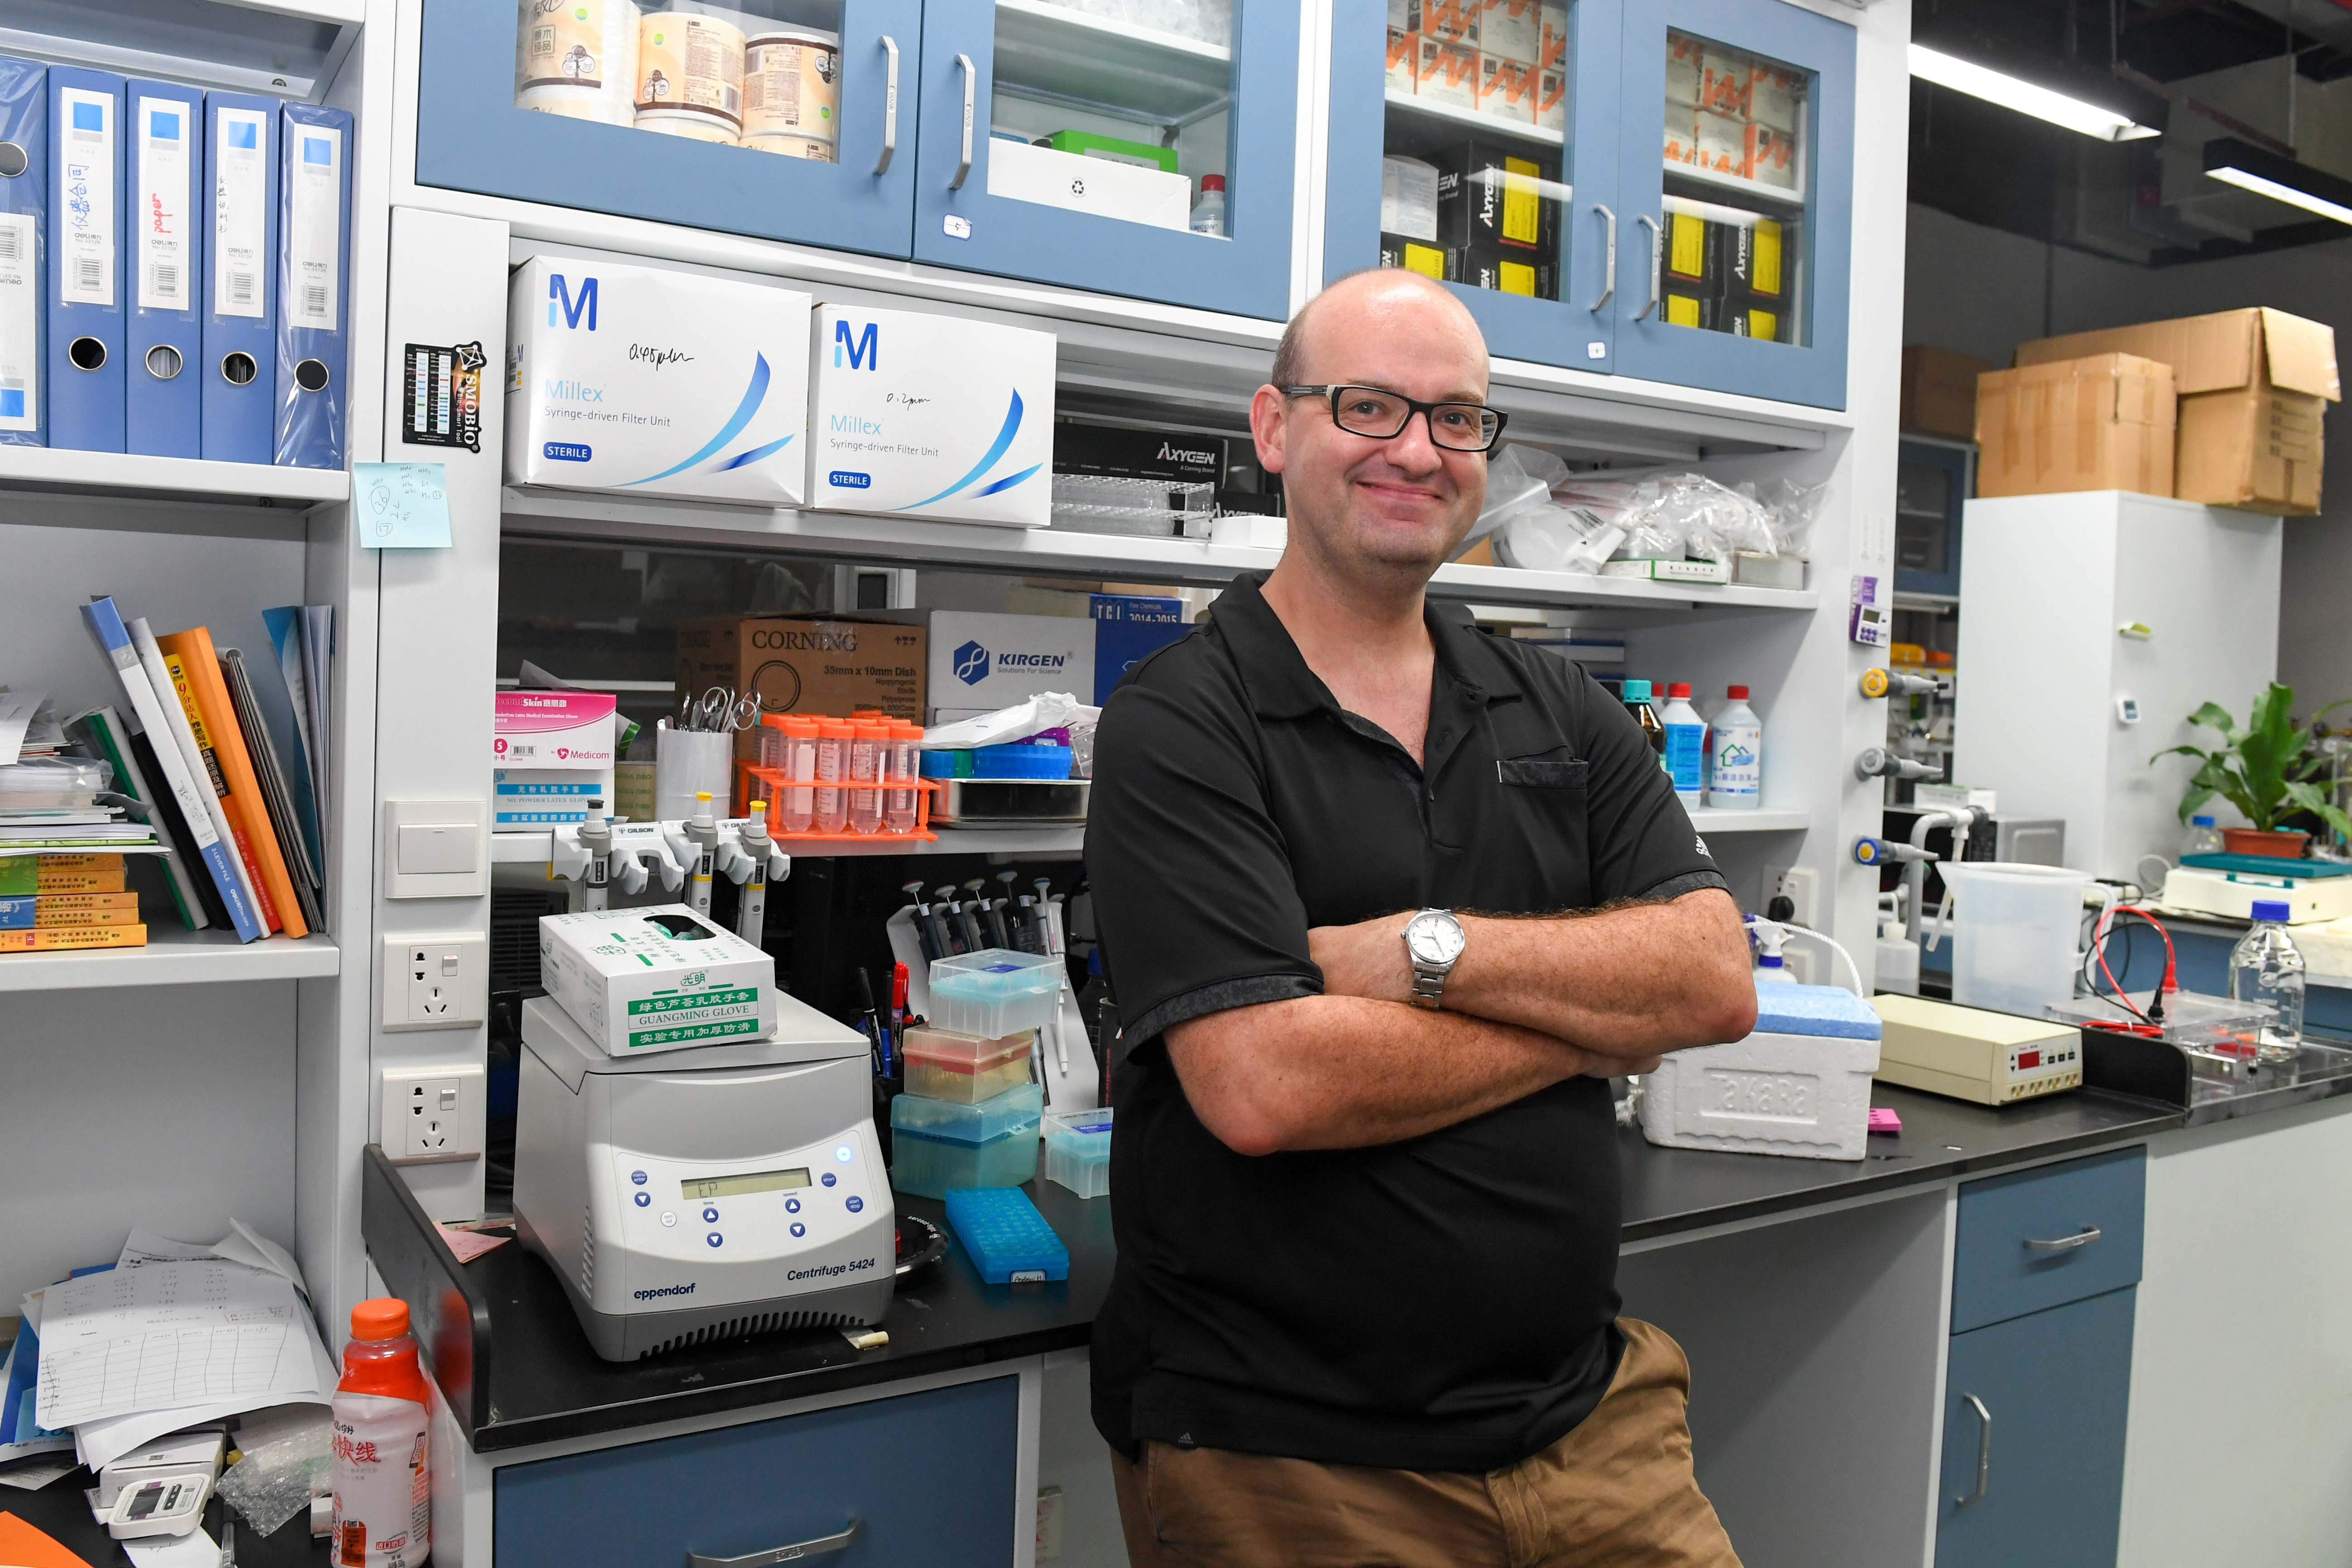 Interview with Associate Professor Andrew Hutchins from the Biology Department